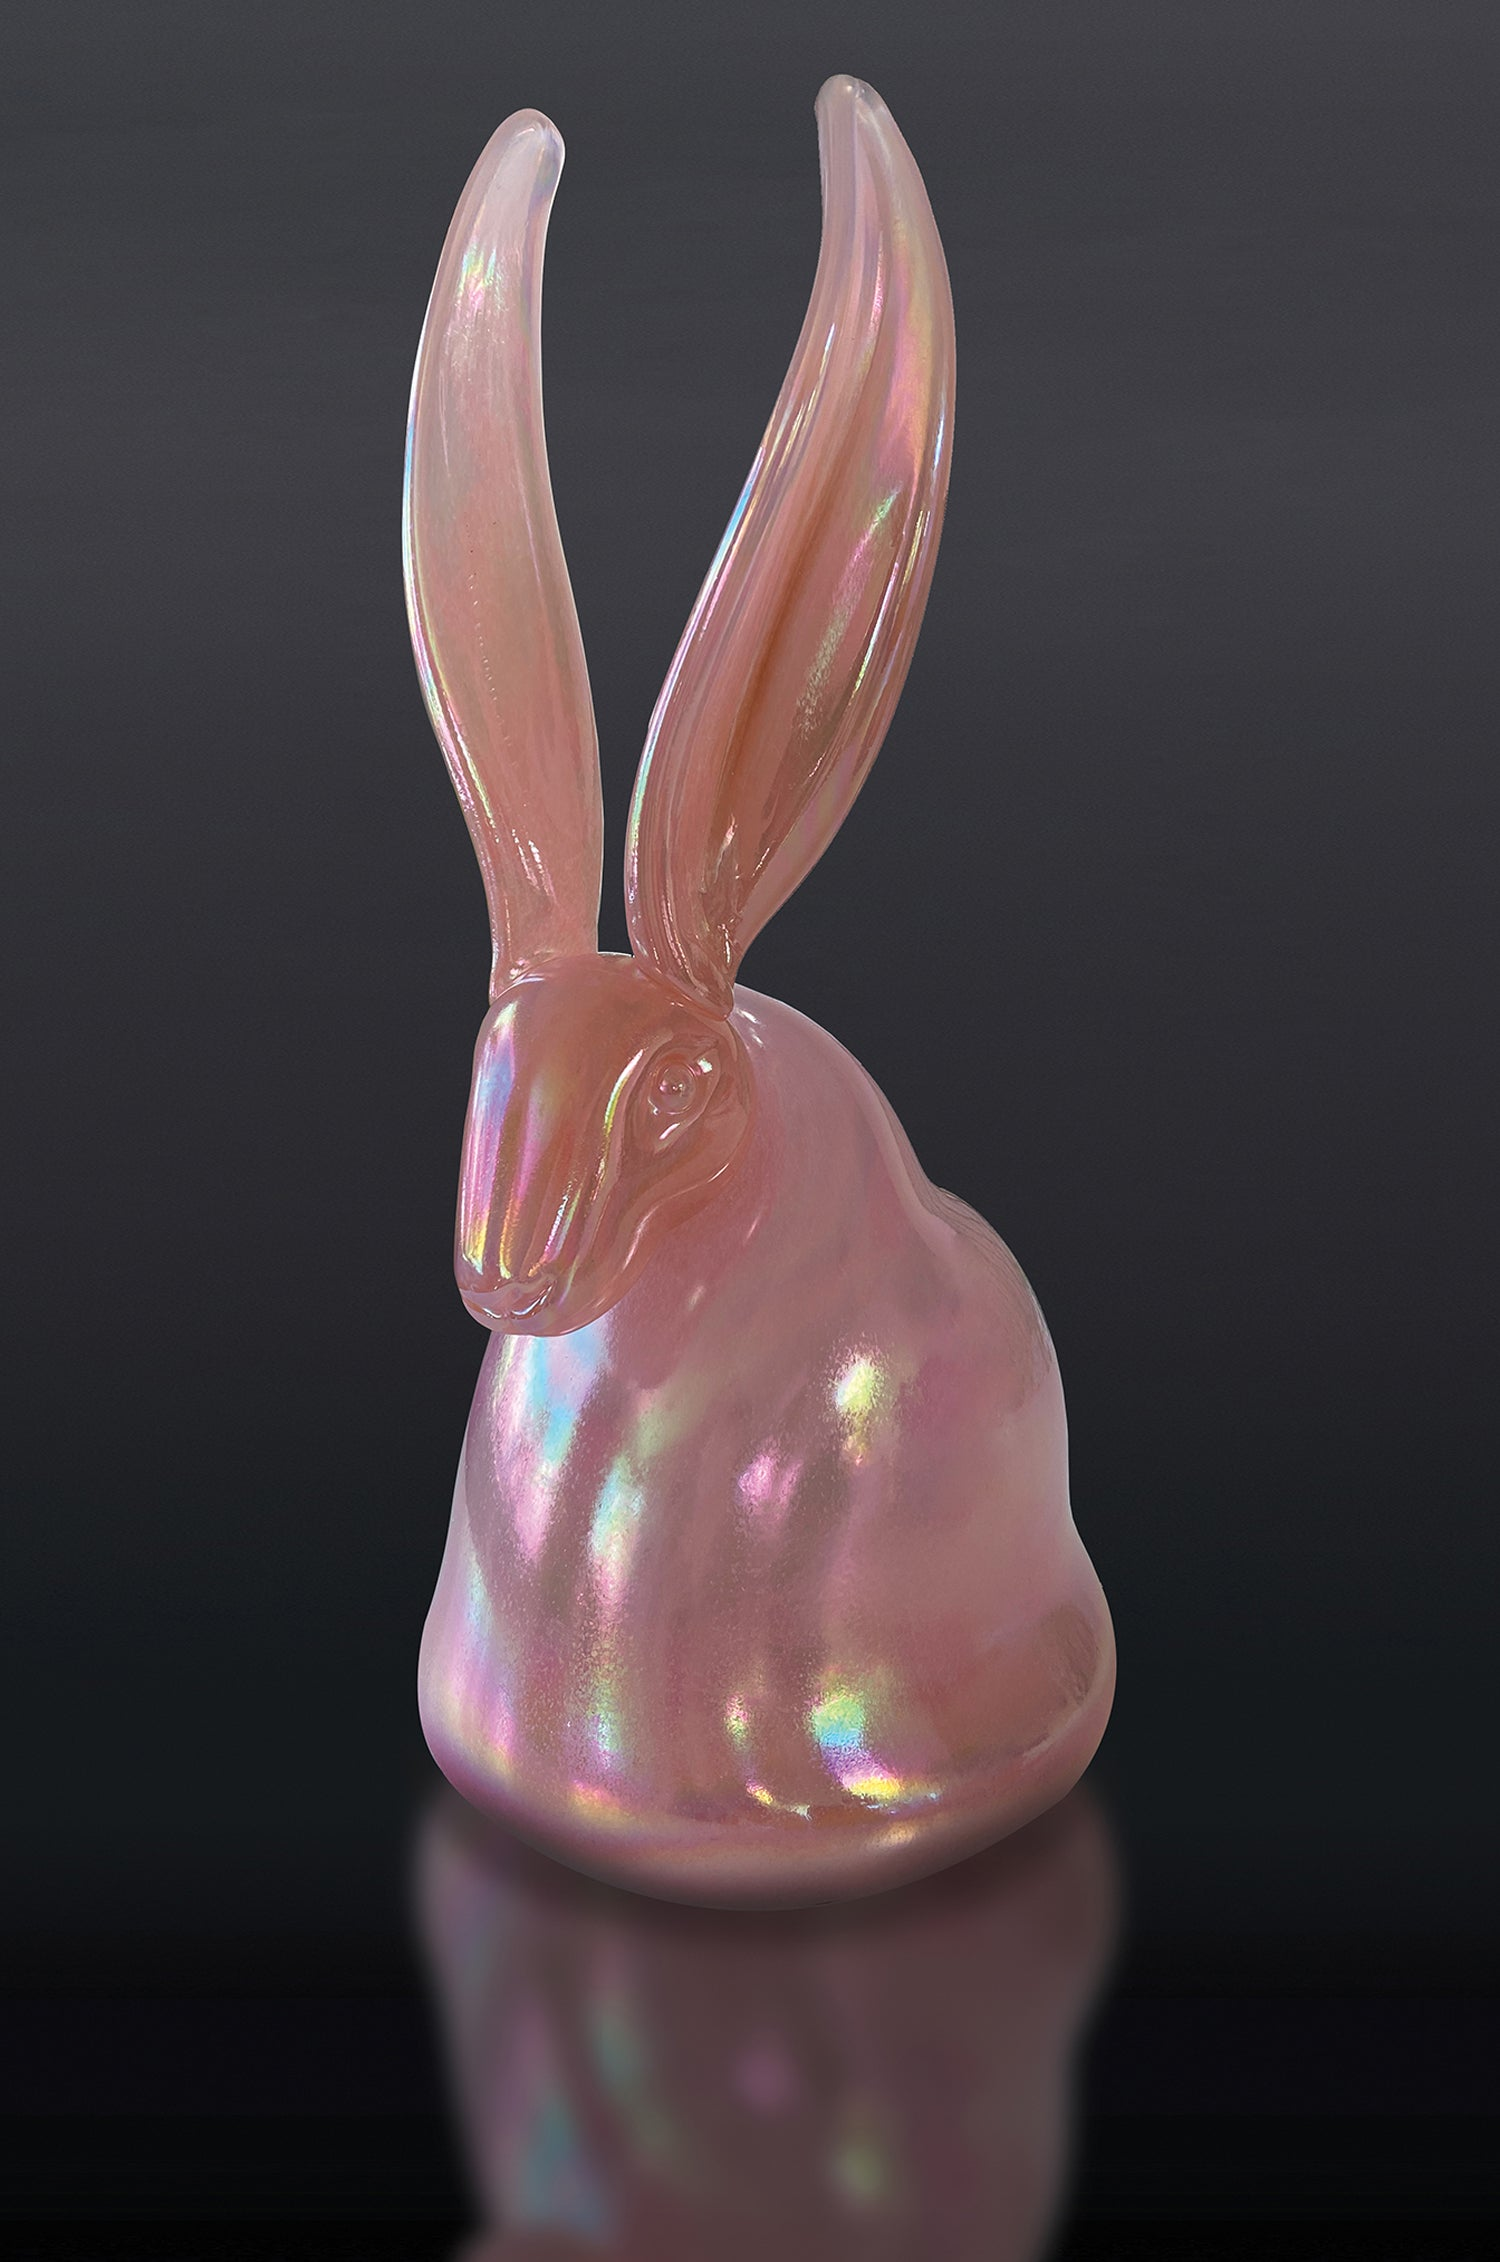 Coral Pink Bunny